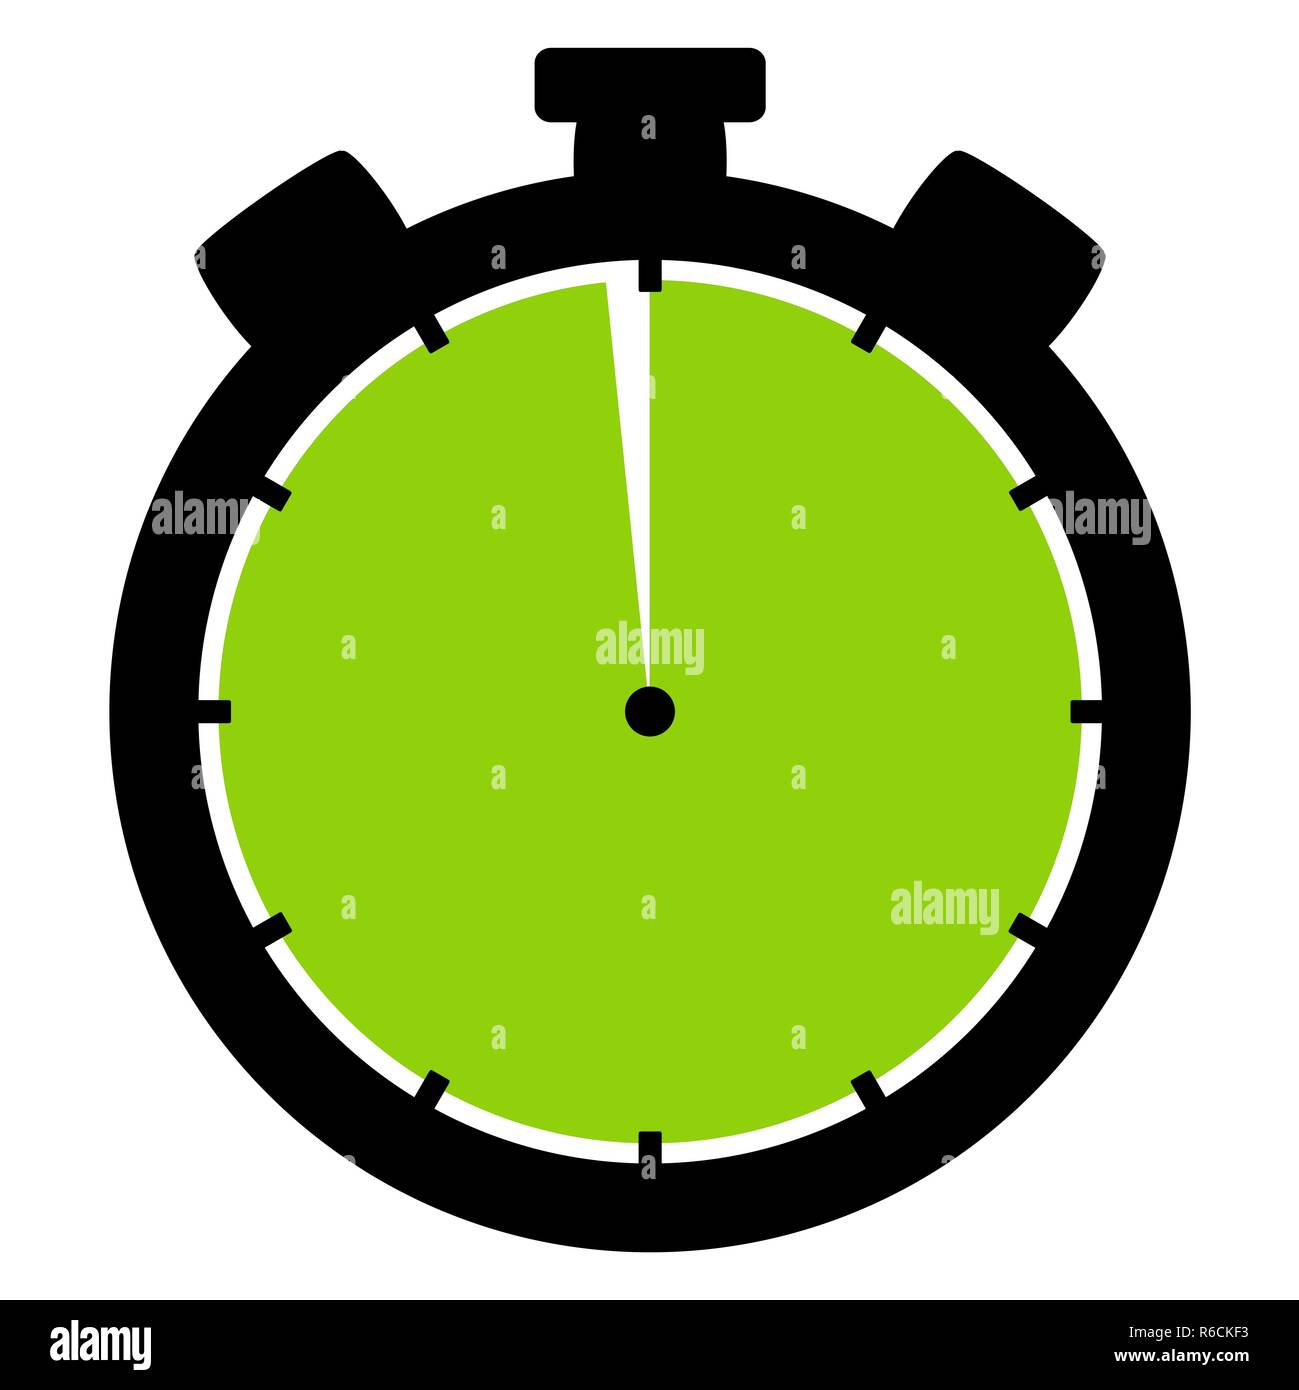 stopwatch icon: 59 minutes or 59 seconds - Stock Image